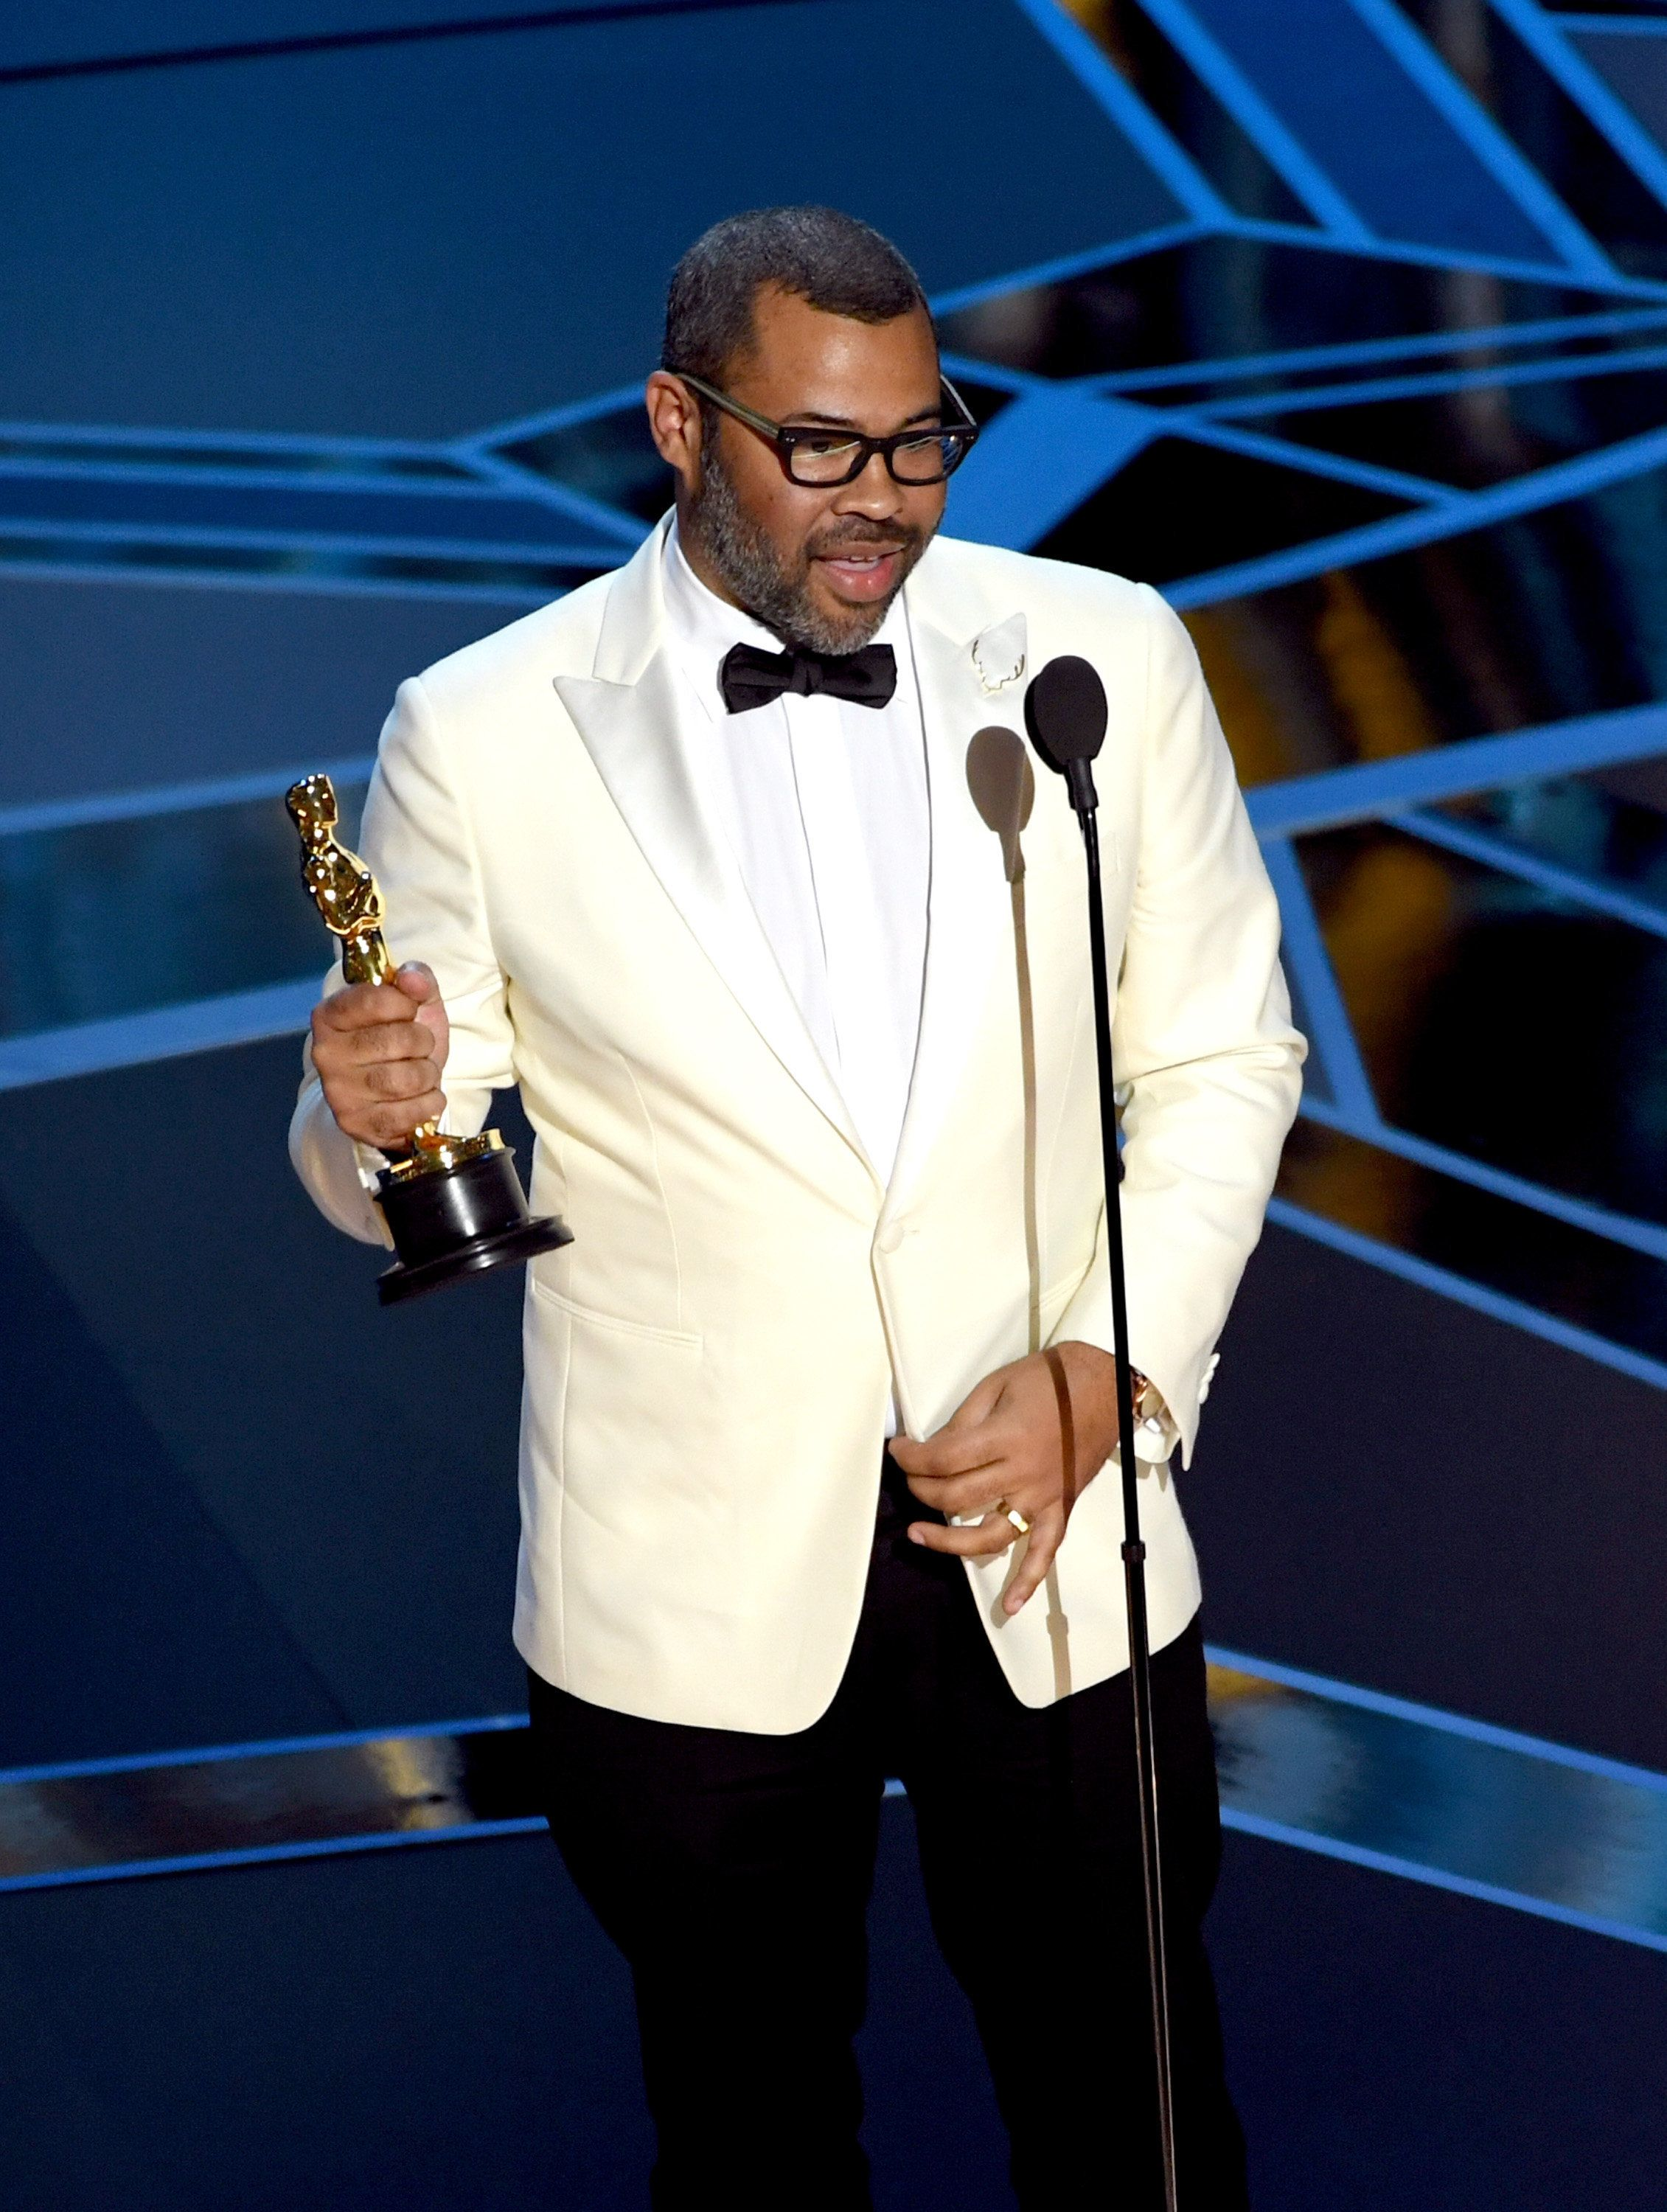 HOLLYWOOD, CA - MARCH 04:  Writer/director Jordan Peele accepts Best Original Screenplay for 'Get Out' onstage during the 90th Annual Academy Awards at the Dolby Theatre at Hollywood & Highland Center on March 4, 2018 in Hollywood, California.  (Photo by Kevin Winter/Getty Images)